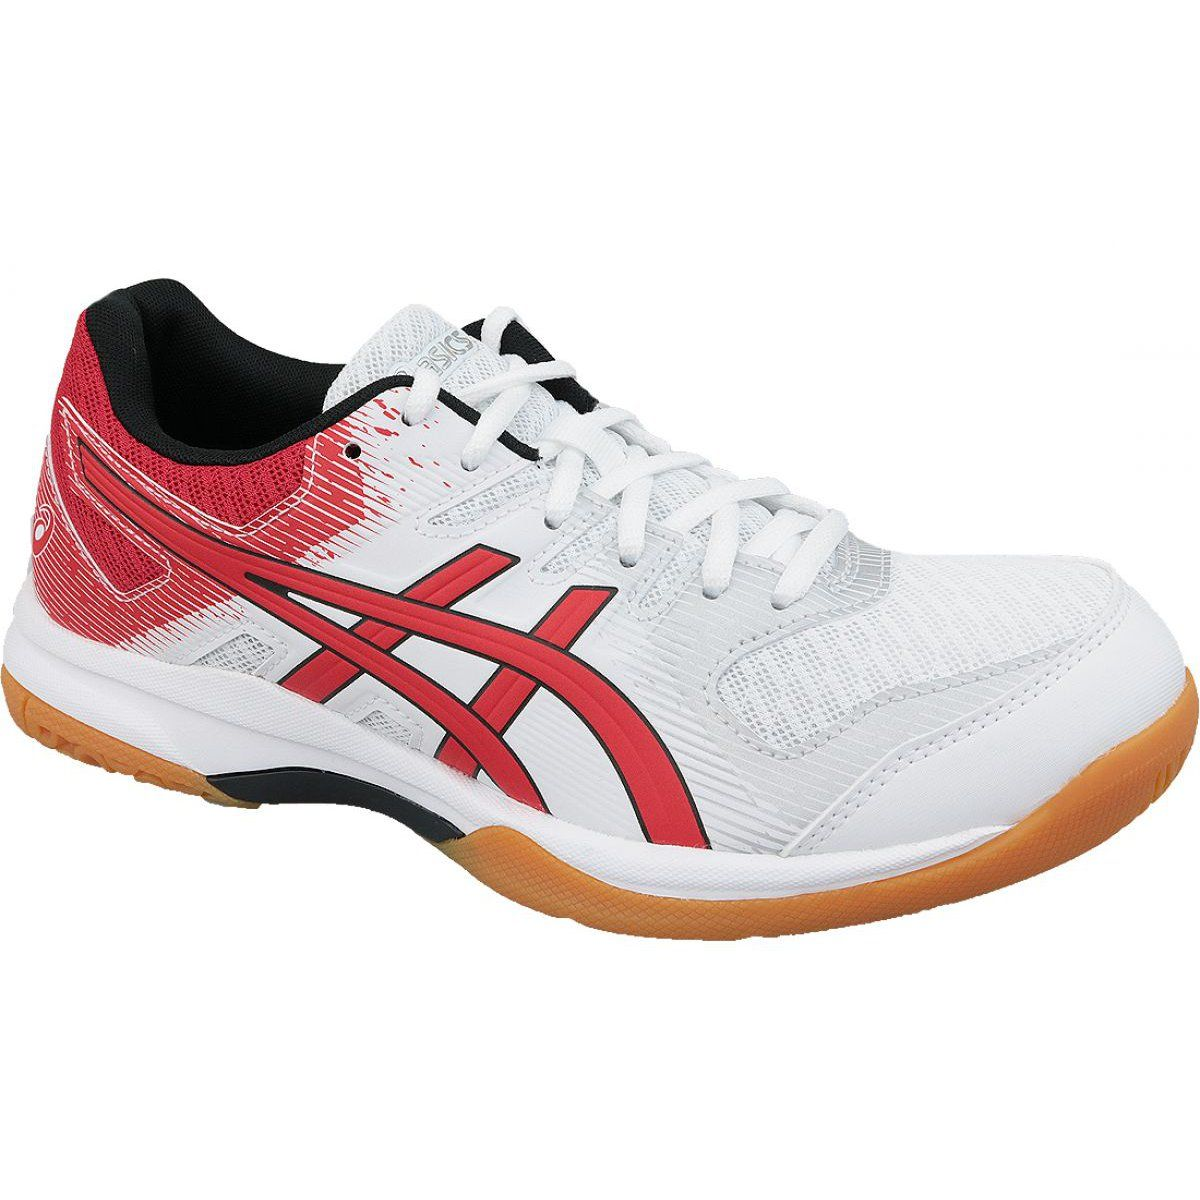 Asics Gel Rocket 9 M 1071A030 101 volleyball shoes white